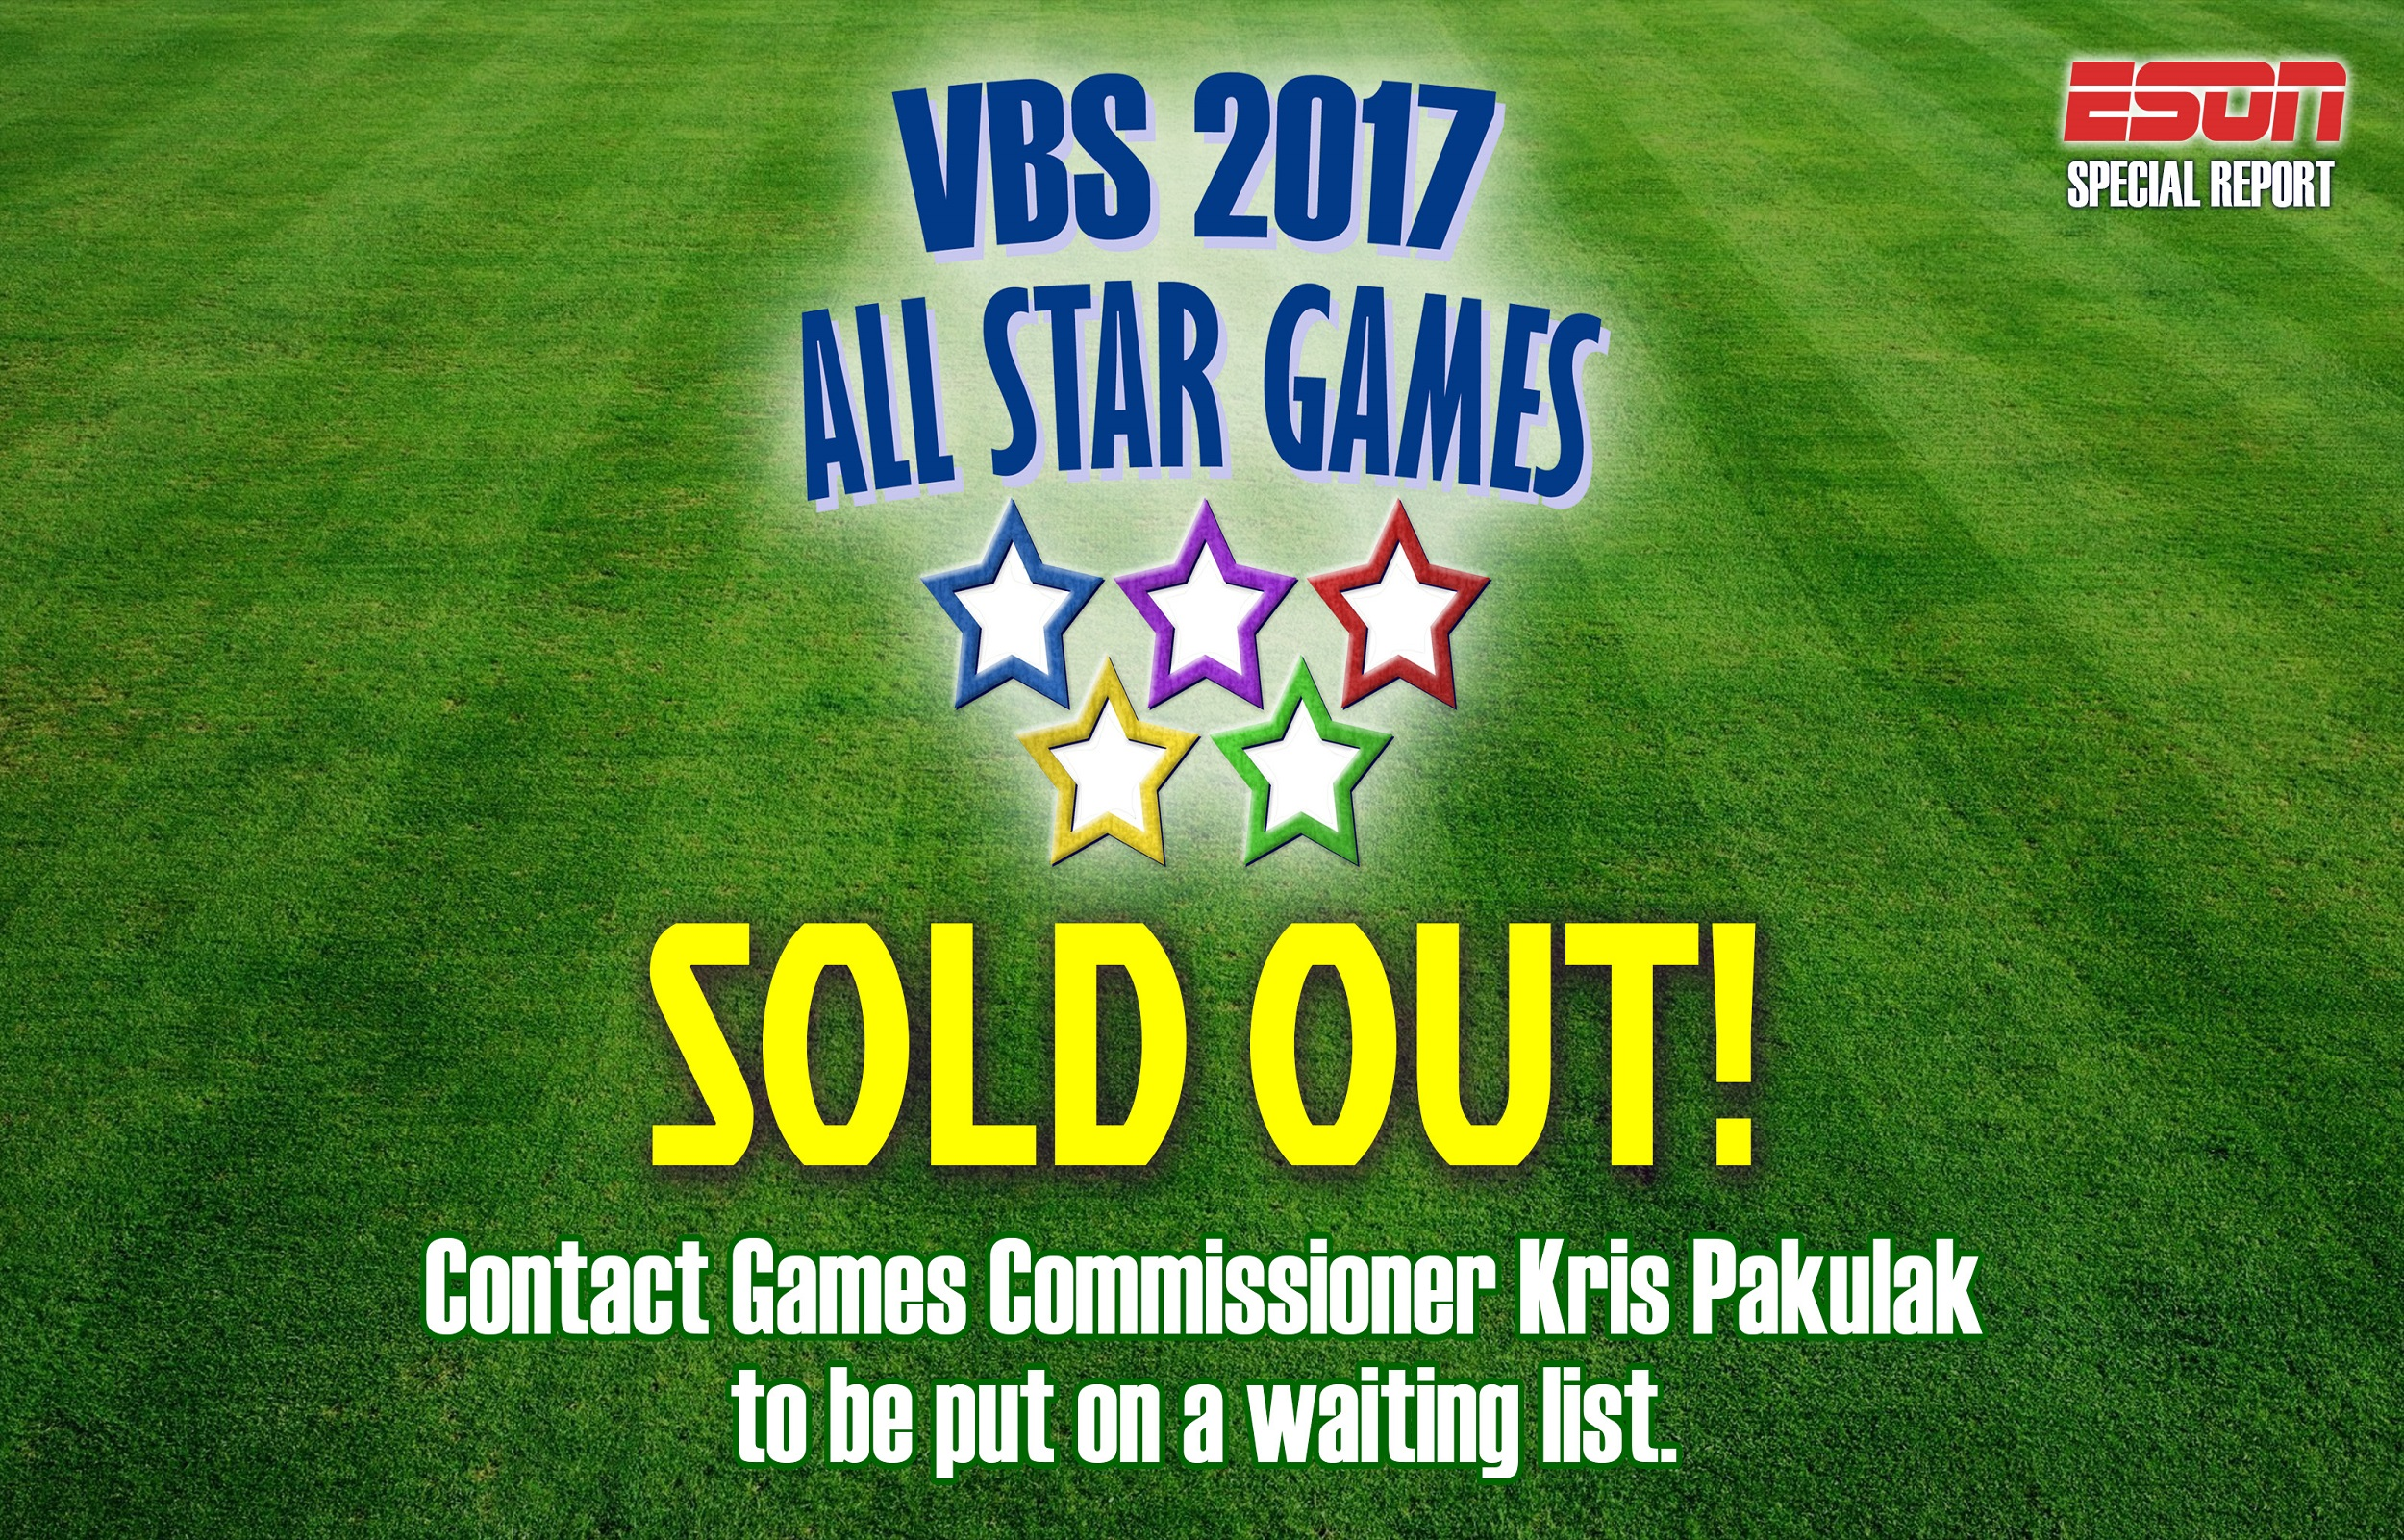 VBS 2017 Page